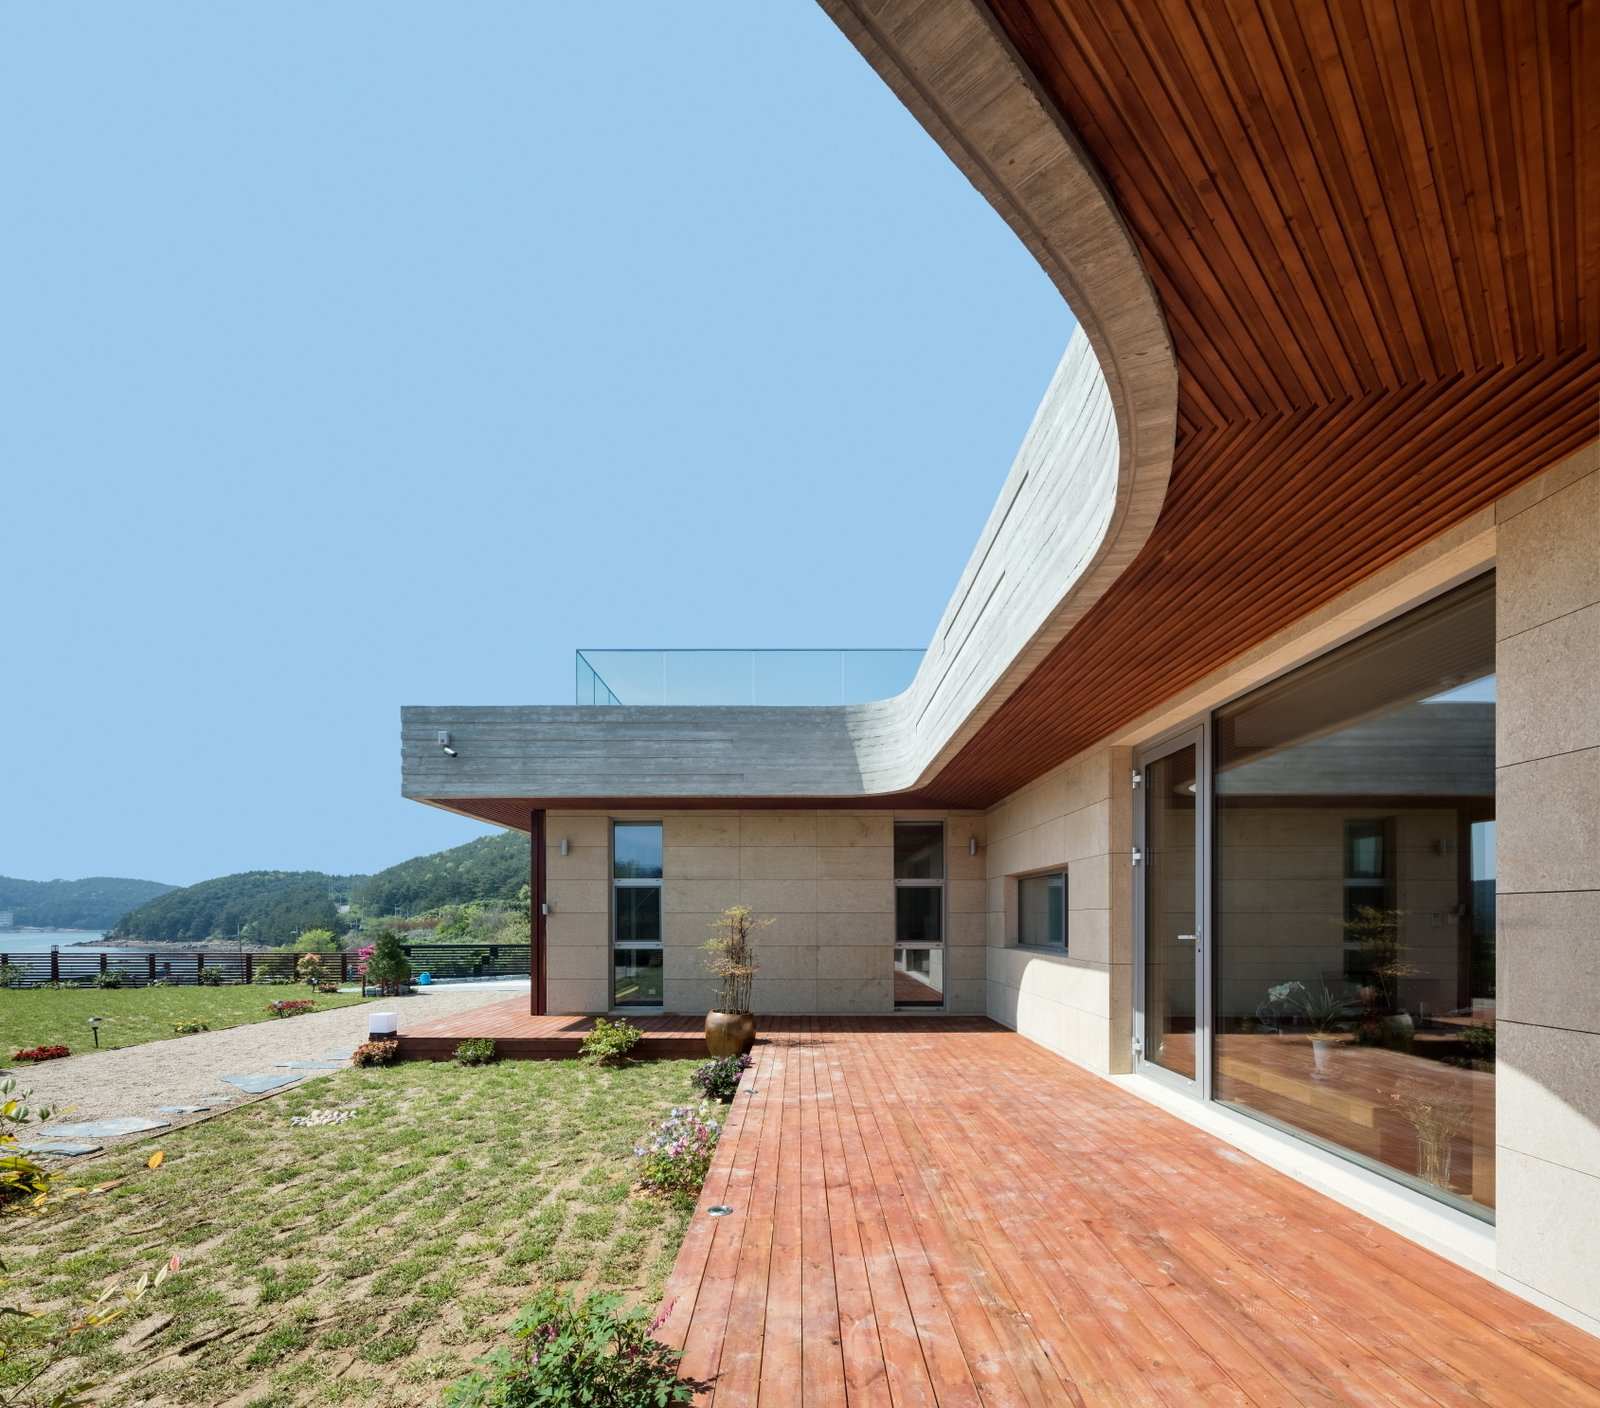 Geoje House (迎海雅院) by 2m2 architects